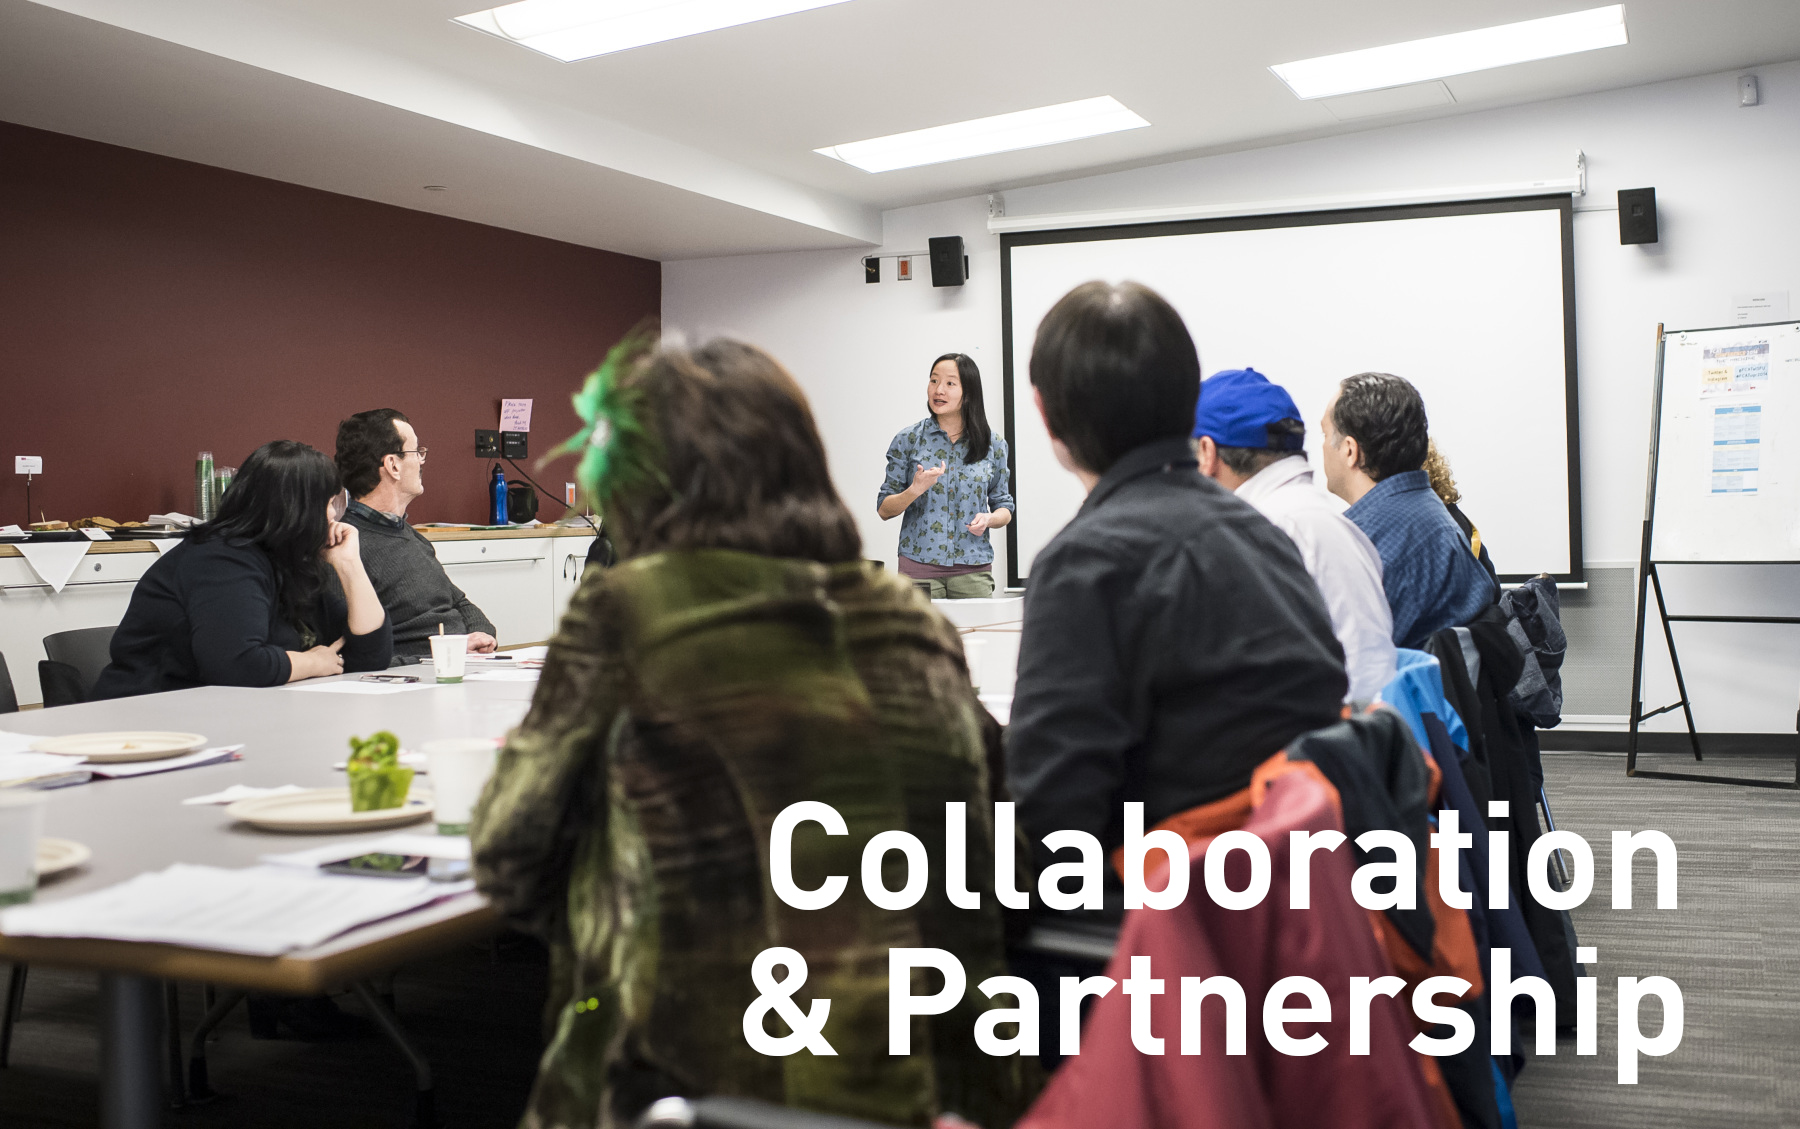 Opportunities for Collaboration & Partnership